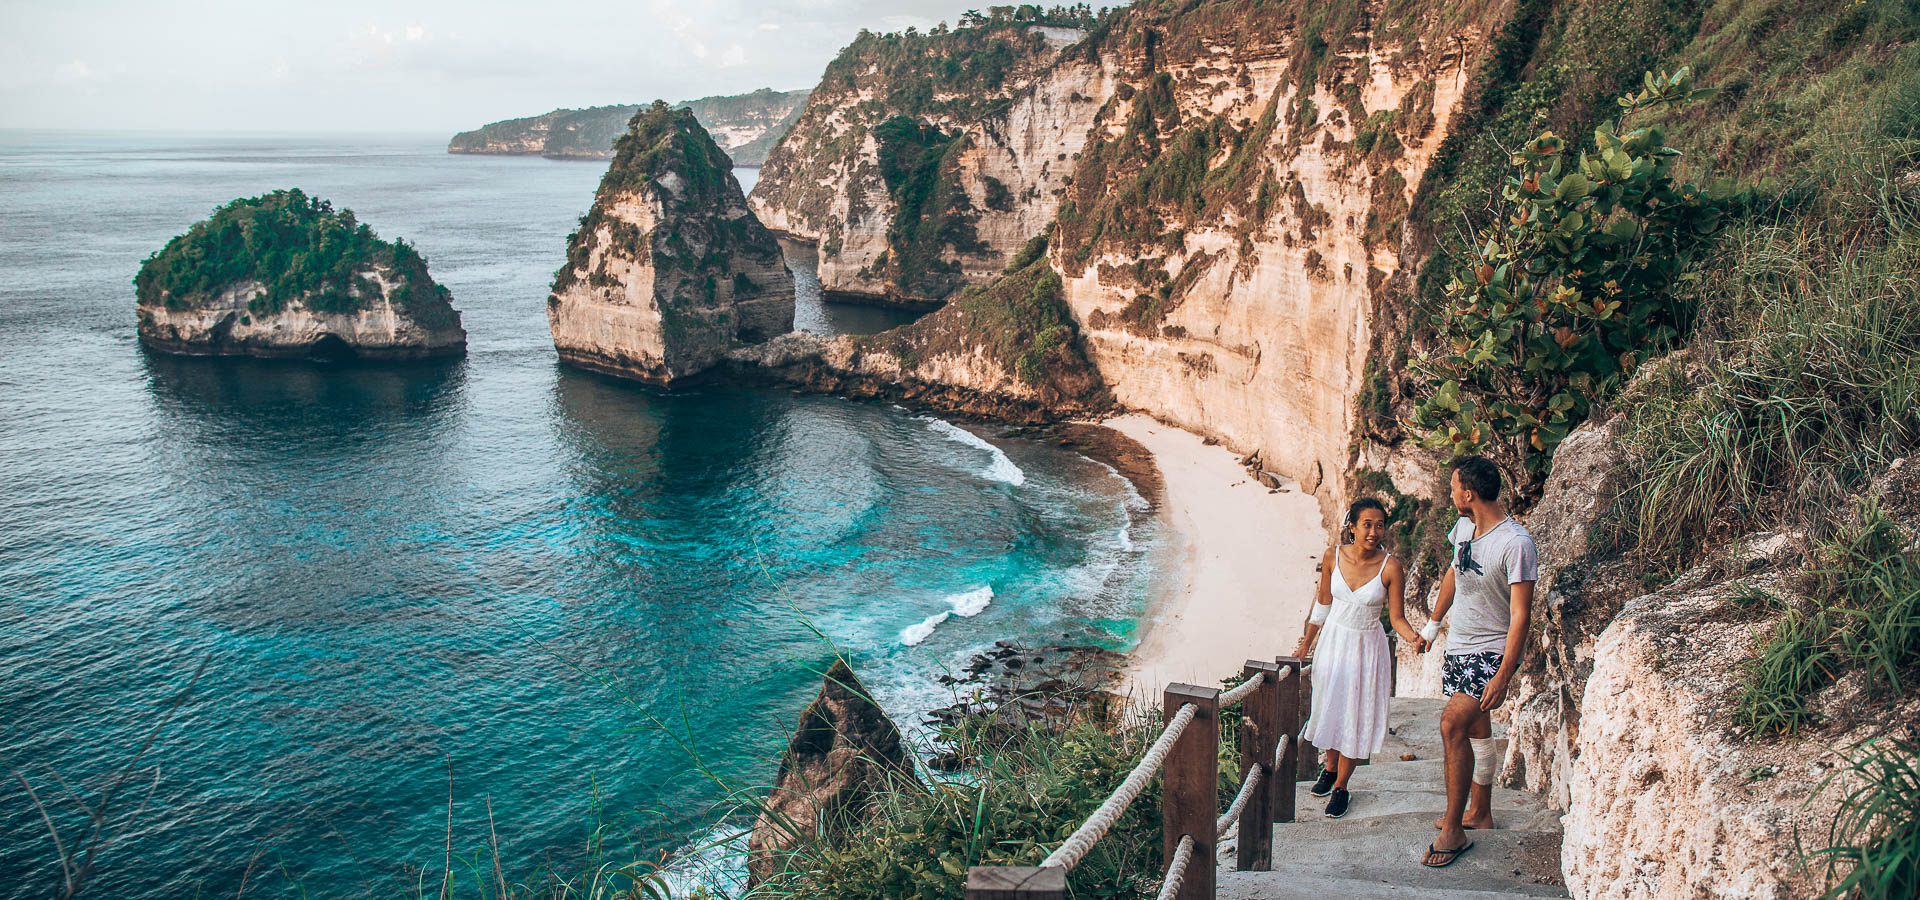 Why You Should Not Rent A Scooter In Nusa Penida | scooter hire nusa penida 20